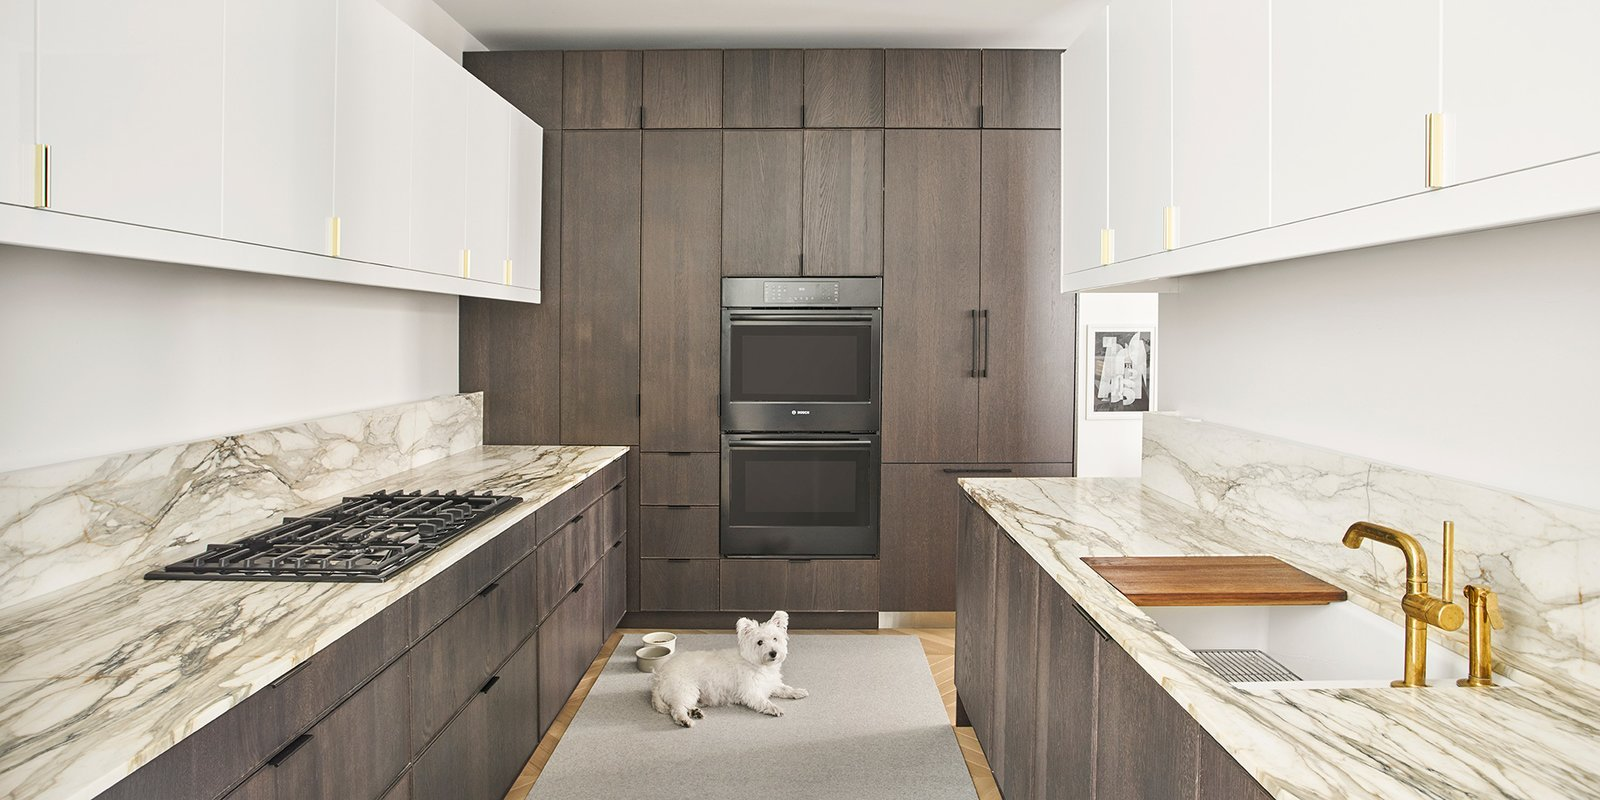 Kitchen, White, Marble, Wood, Light Hardwood, Stone Slab, Recessed, Accent, Ceiling, Refrigerator, Wall Oven, Cooktops, Range Hood, Dishwasher, and Undermount Kitchen (w/ Winston)  Best Kitchen Ceiling White Marble Dishwasher Photos from Courtyard House